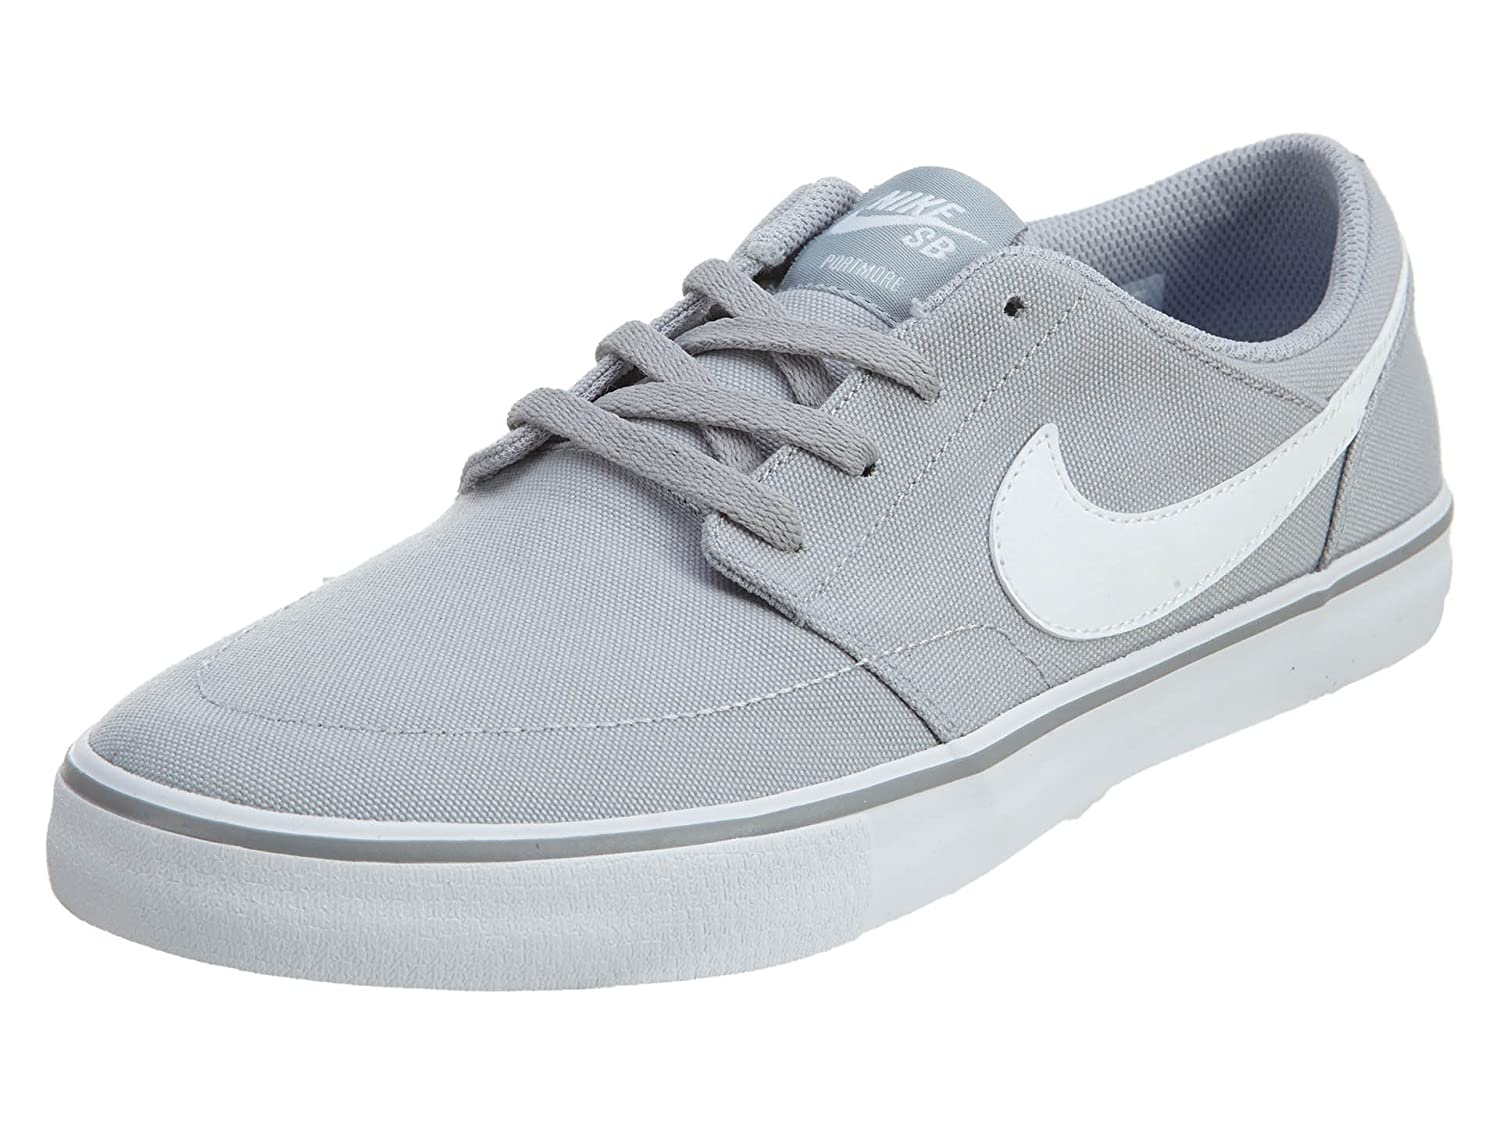 sleek performance sportswear clearance prices Nike SB Portmore II Solarsoft Canvas Skate Shoes (4 4 D(M) US/6 Women)